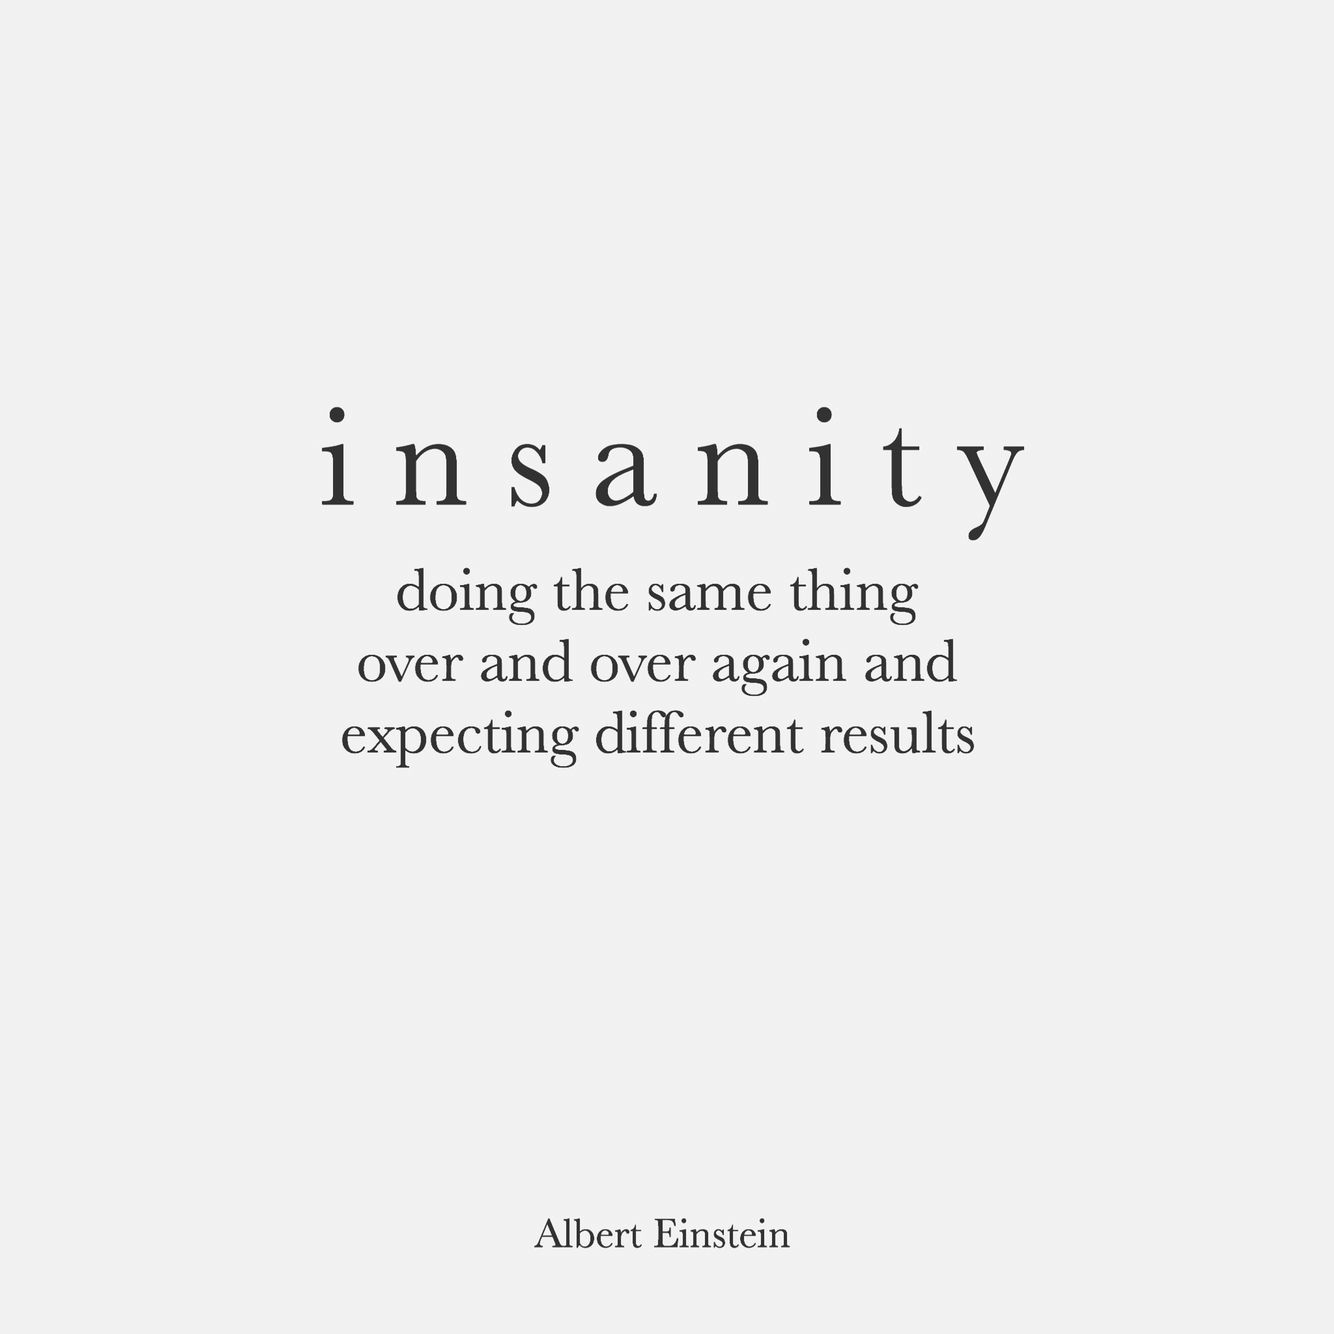 Love Quotes Albert Einstein Quotes Insanity Albert Einstein Quotes Insanity Albert Einstein Quotes Education Student Albe Einstein Spruche Motivation